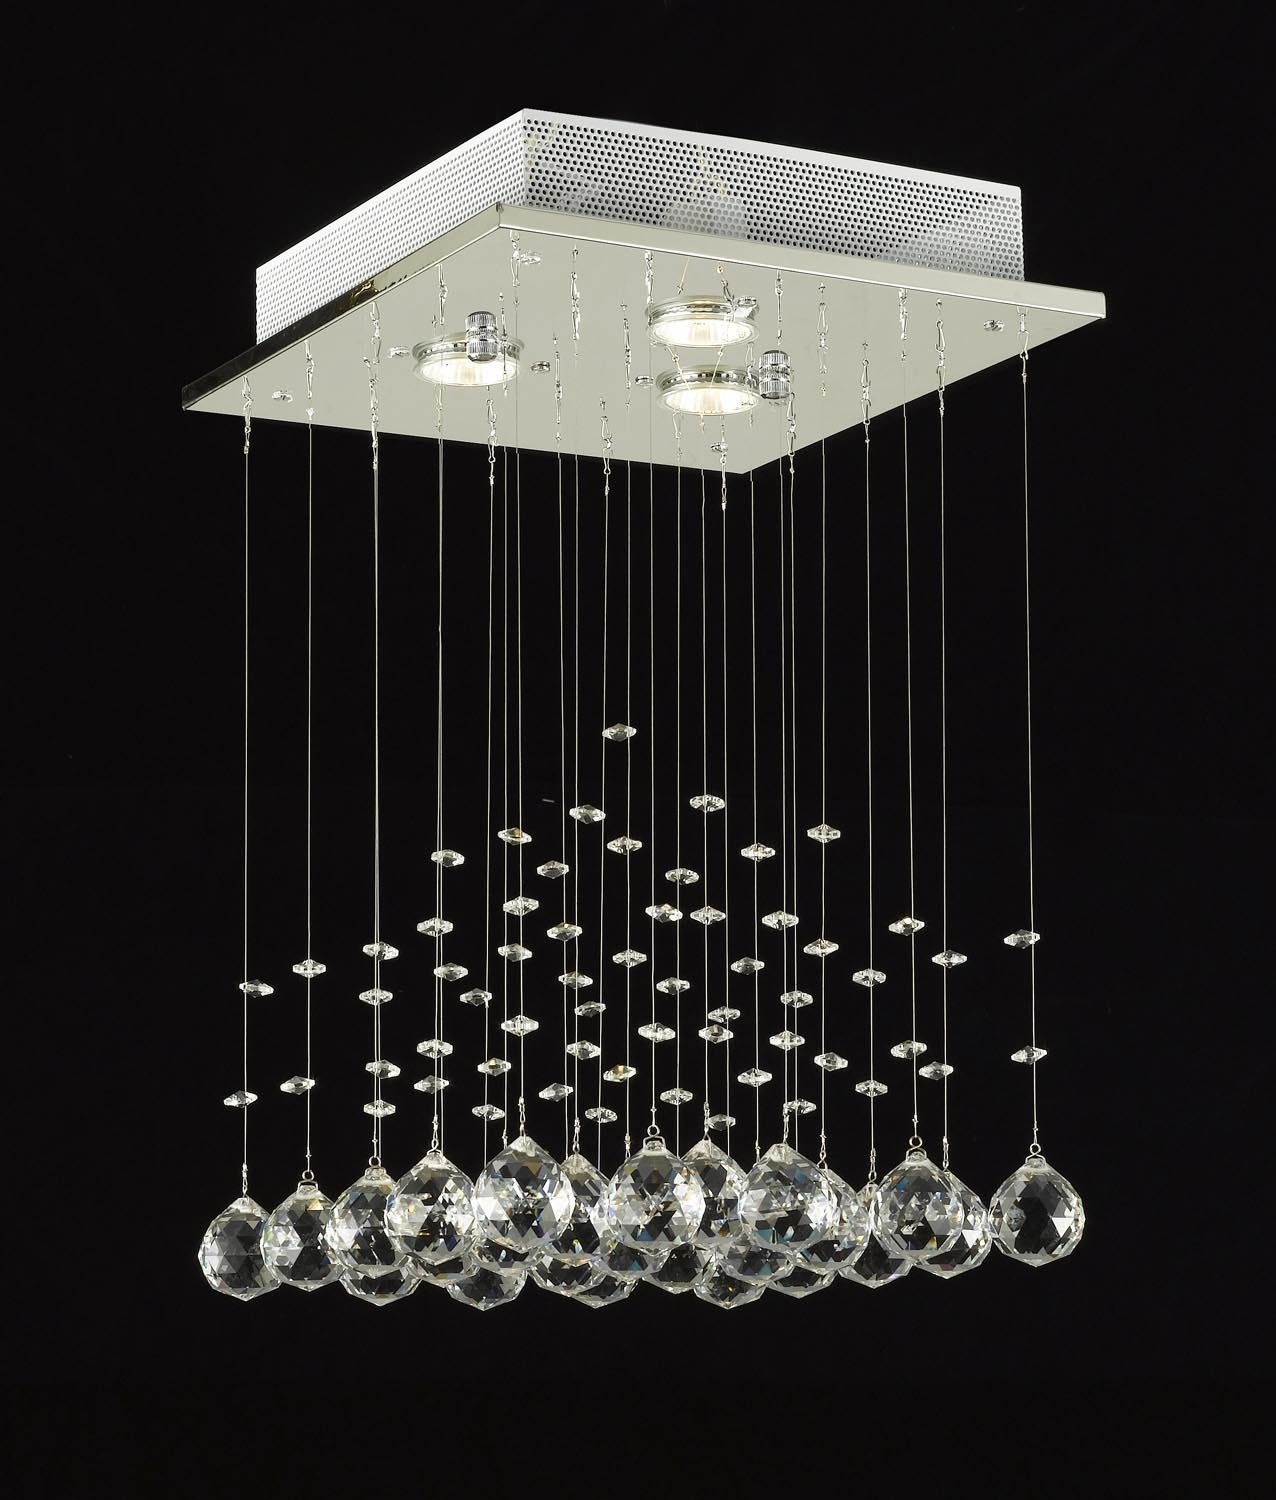 Modern Chandelier Rain Drop Lighting Crystal Ball Fixture Pendant Intended For Modern Small Chandeliers (Image 10 of 15)